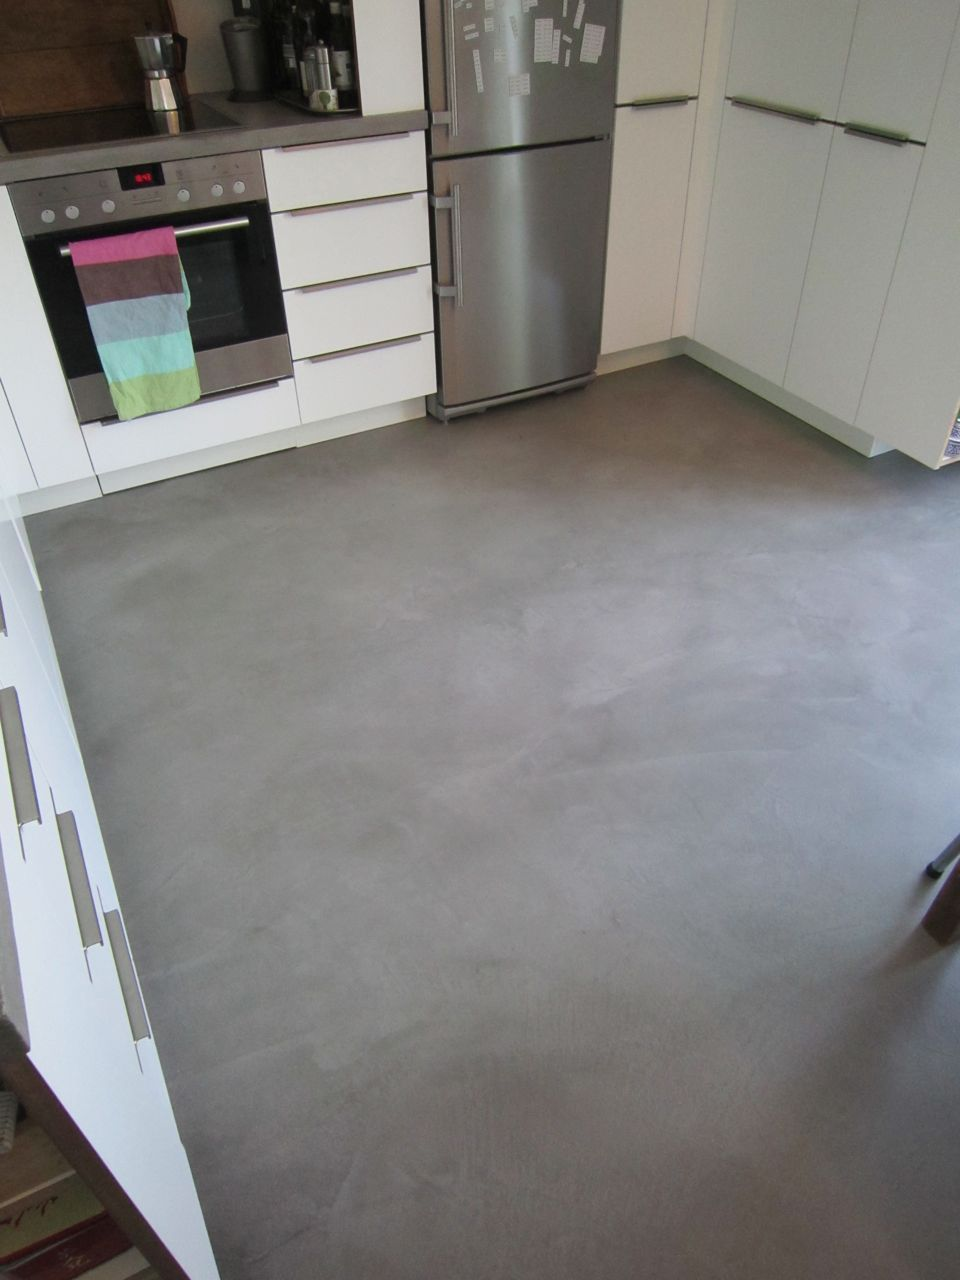 Küche Boden Küchenboden Beton Optik Used Look Ideen Bb In 2019 Kitchen